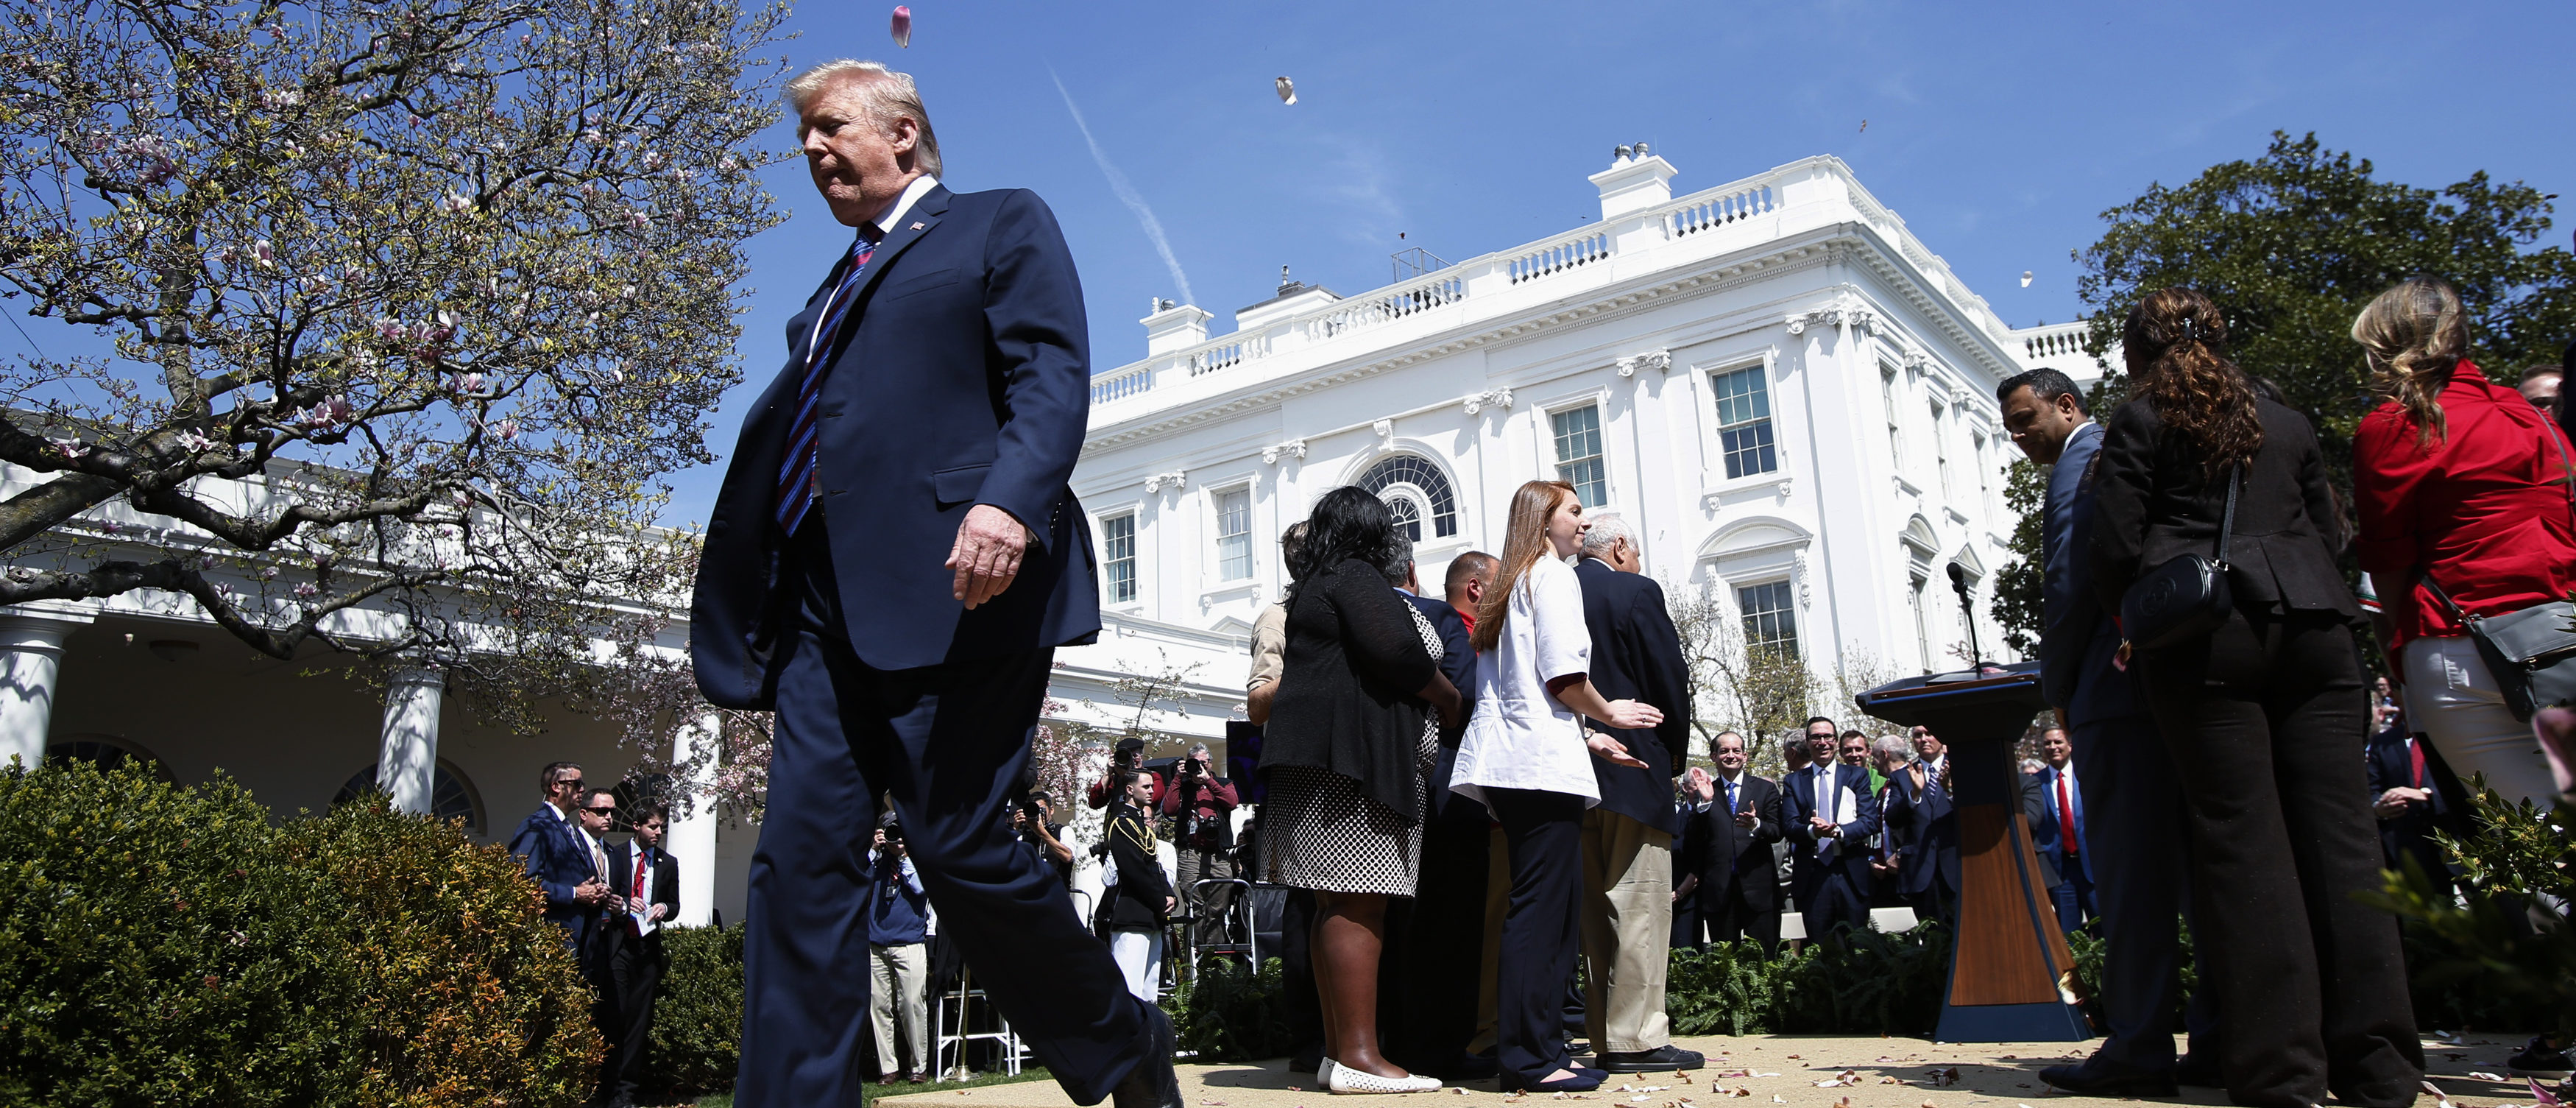 U.S. President Trump departs after giving remarks on tax cuts for American workers during an event at the White House in Washington